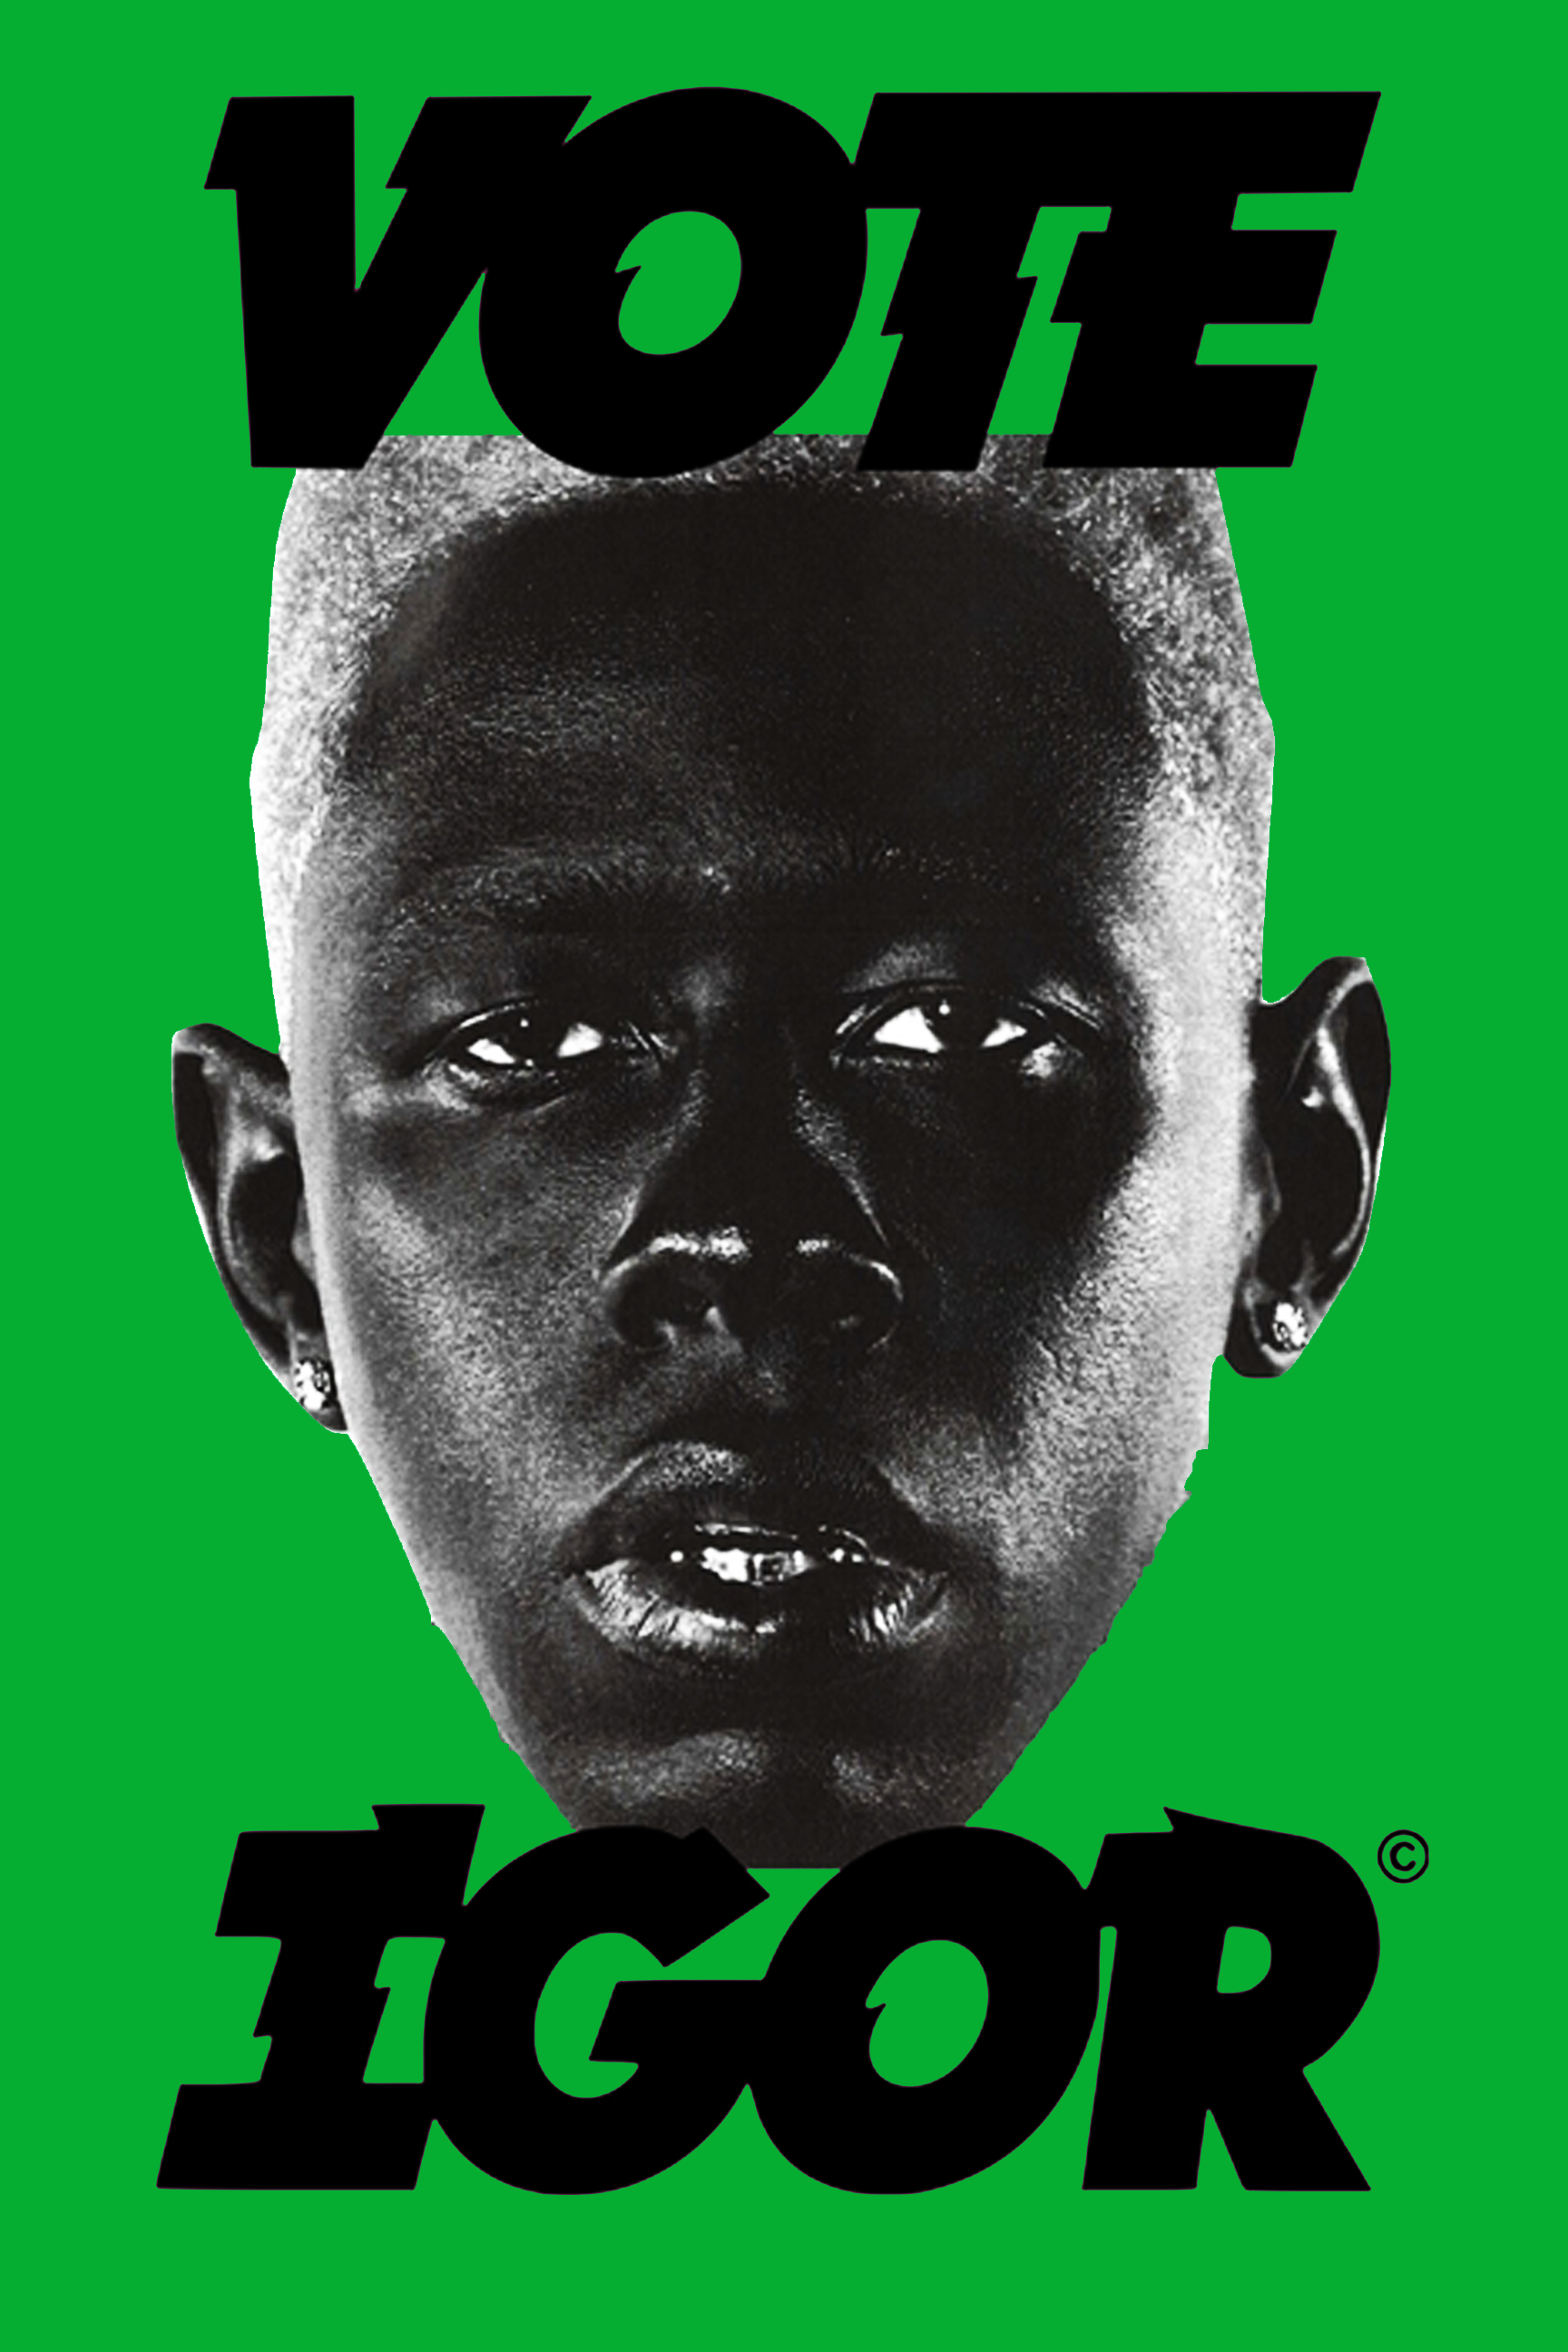 Tyler The Creator Igor Poster 4 In 2020 Poster Wall Tyler The Creator Wallpaper Picture Collage Wall